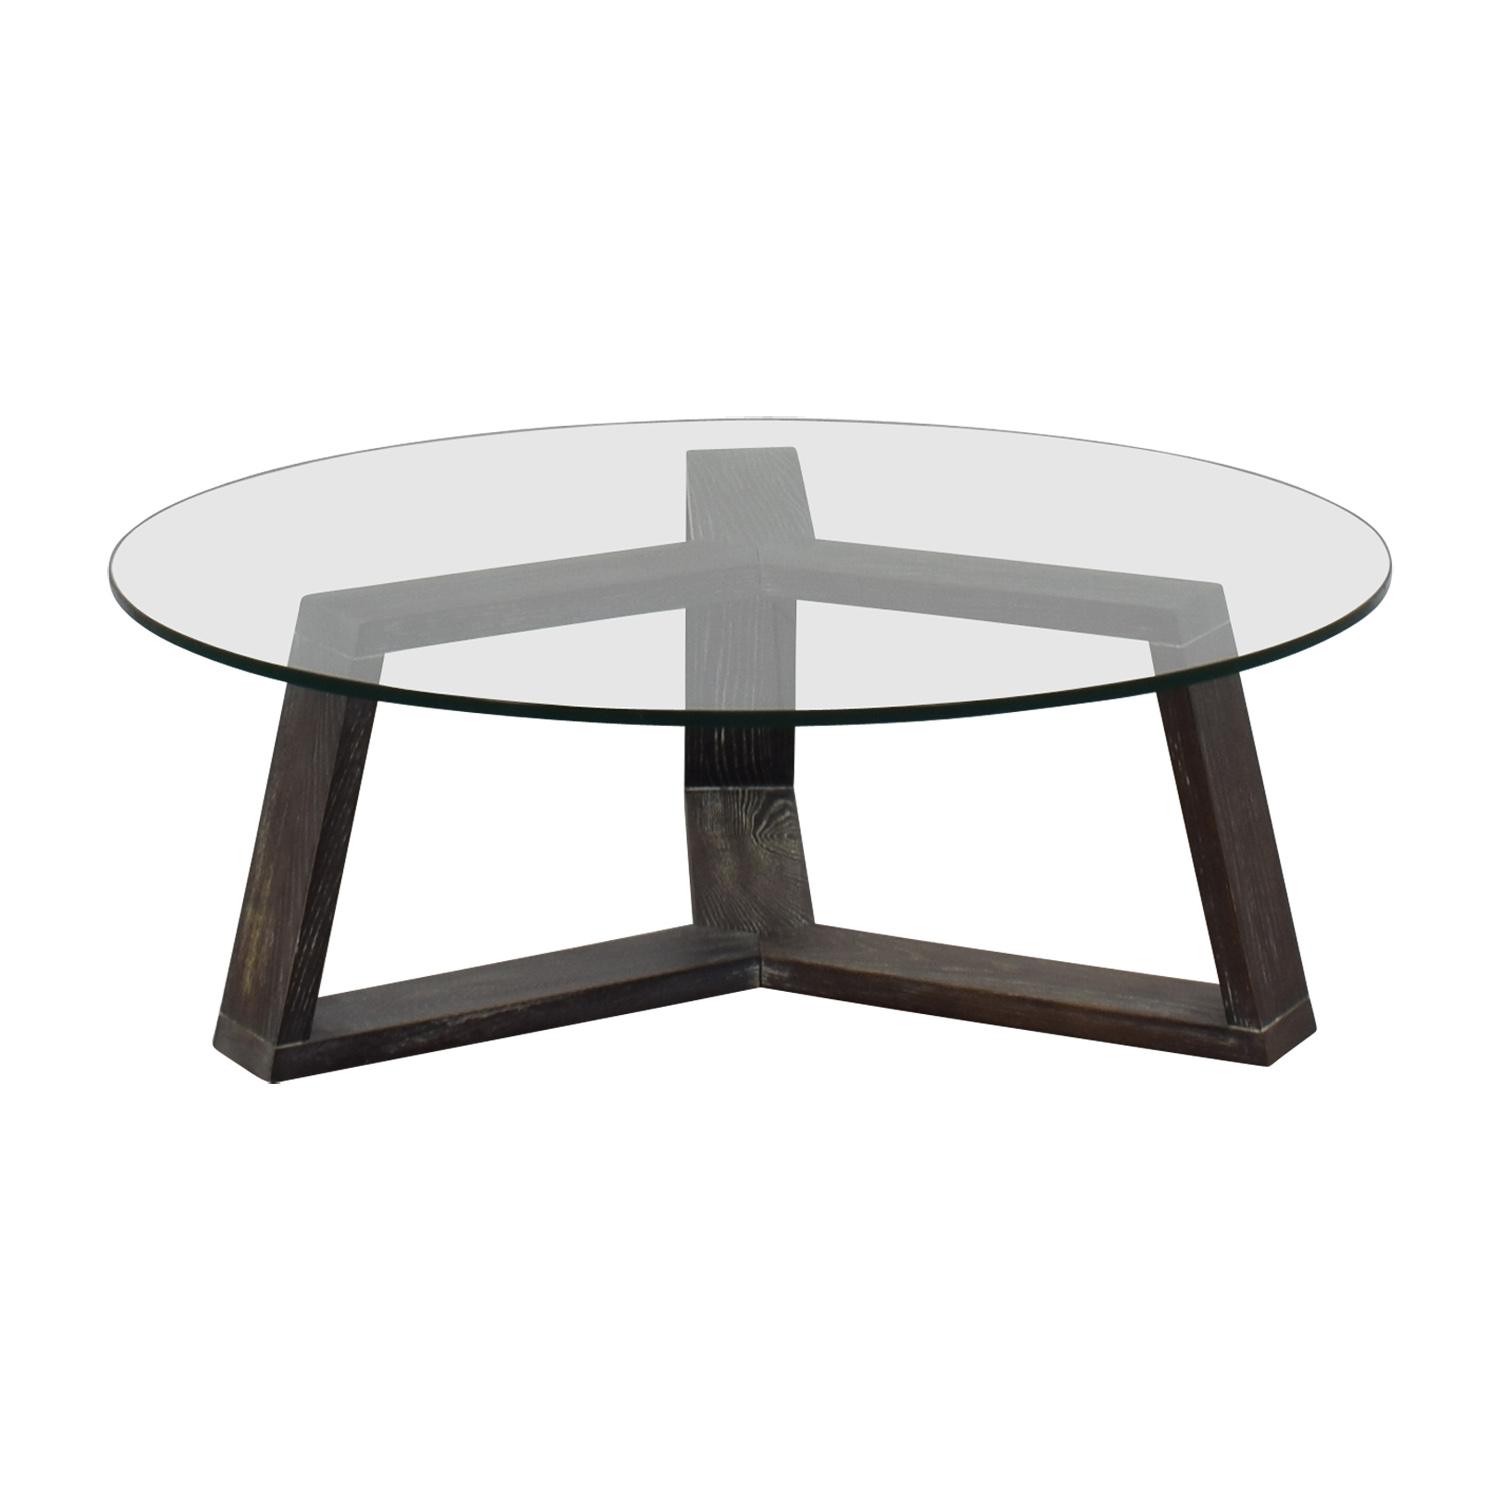 off platner style round glass and chrome coffee table tables wood cassie accent with shelf mats black metal outdoor end silver nesting sofa tile bistro hourglass threshold blue